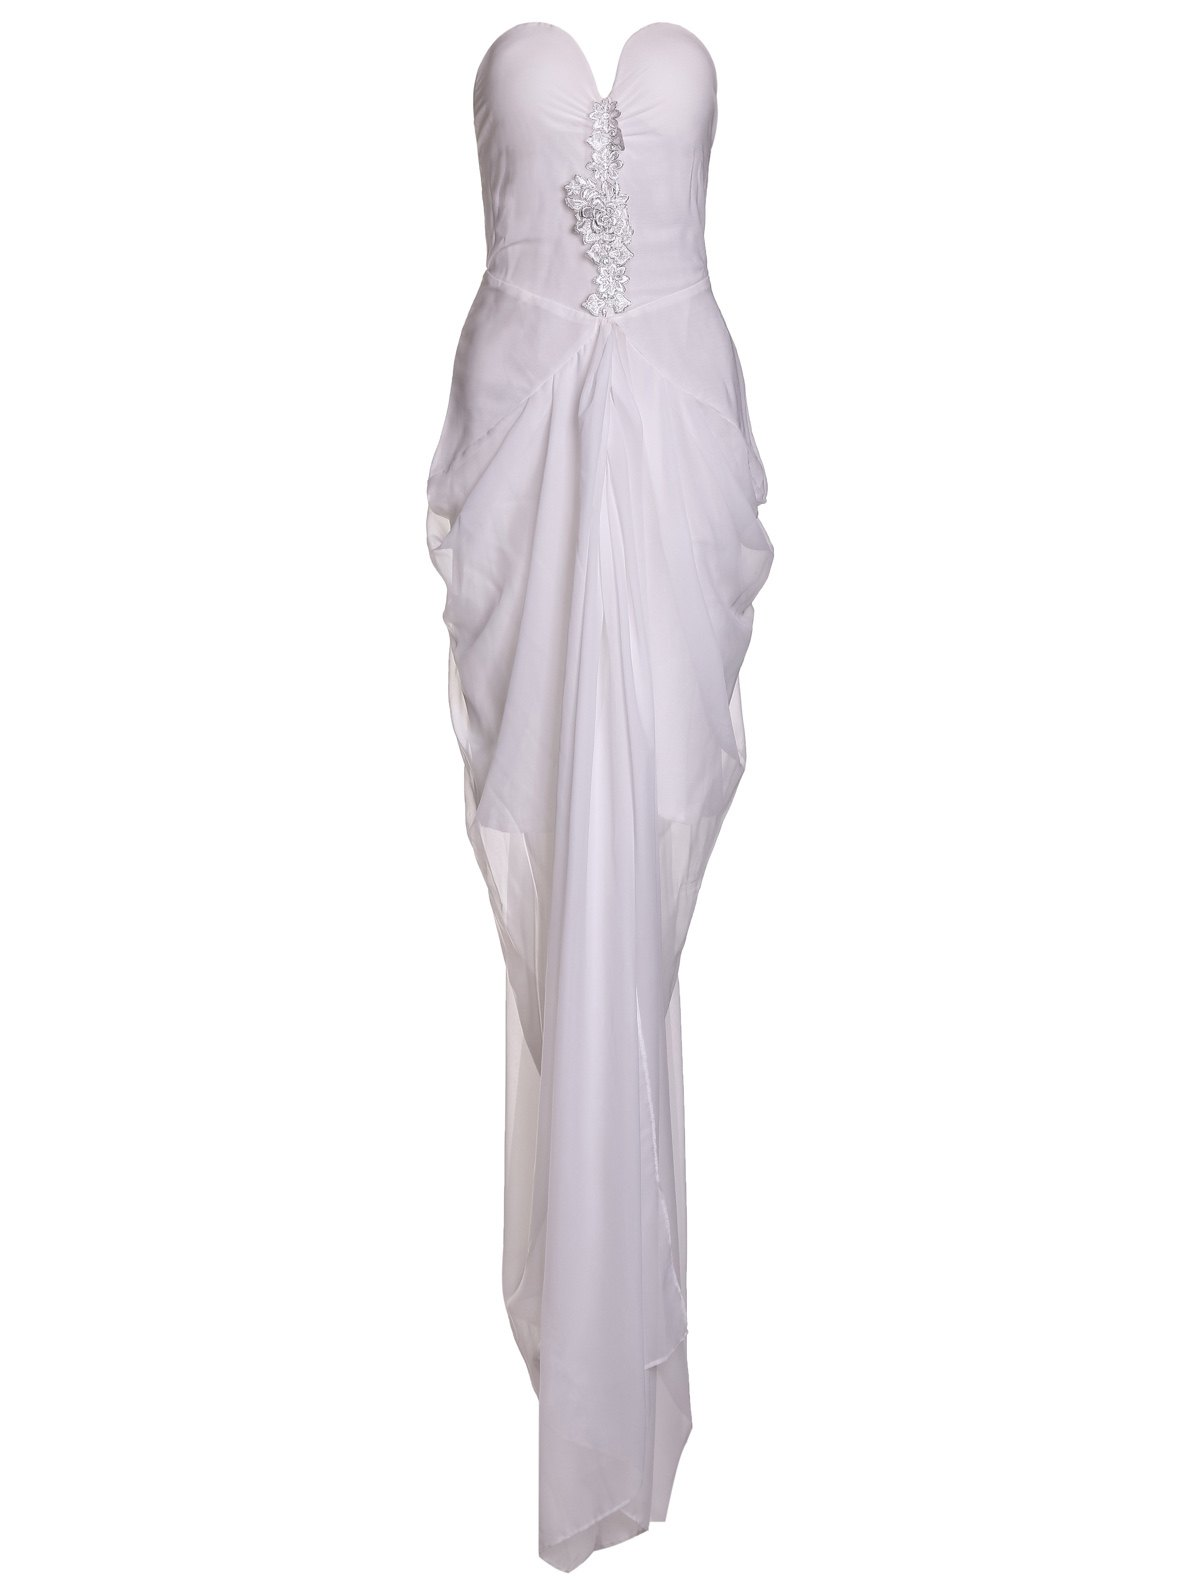 Charming White Strapless Irregular Pleated High Slit Chiffon Maxi Dress For Women